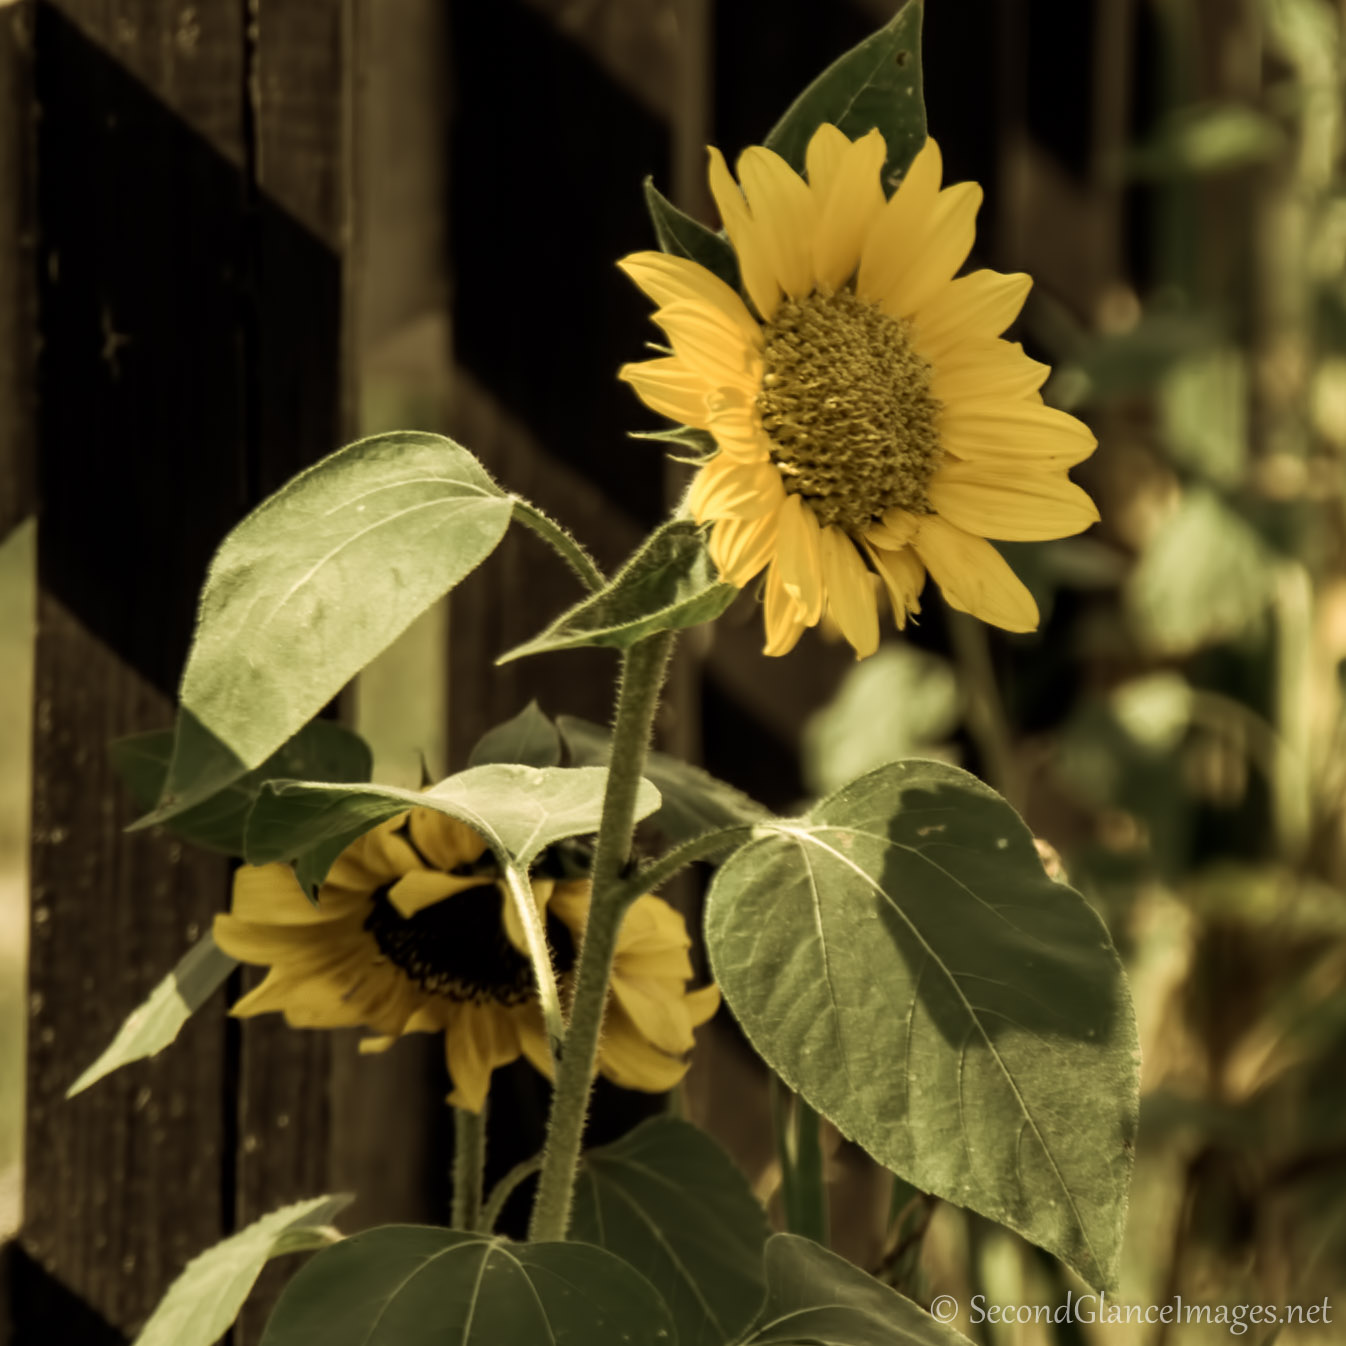 Another sunflower ...